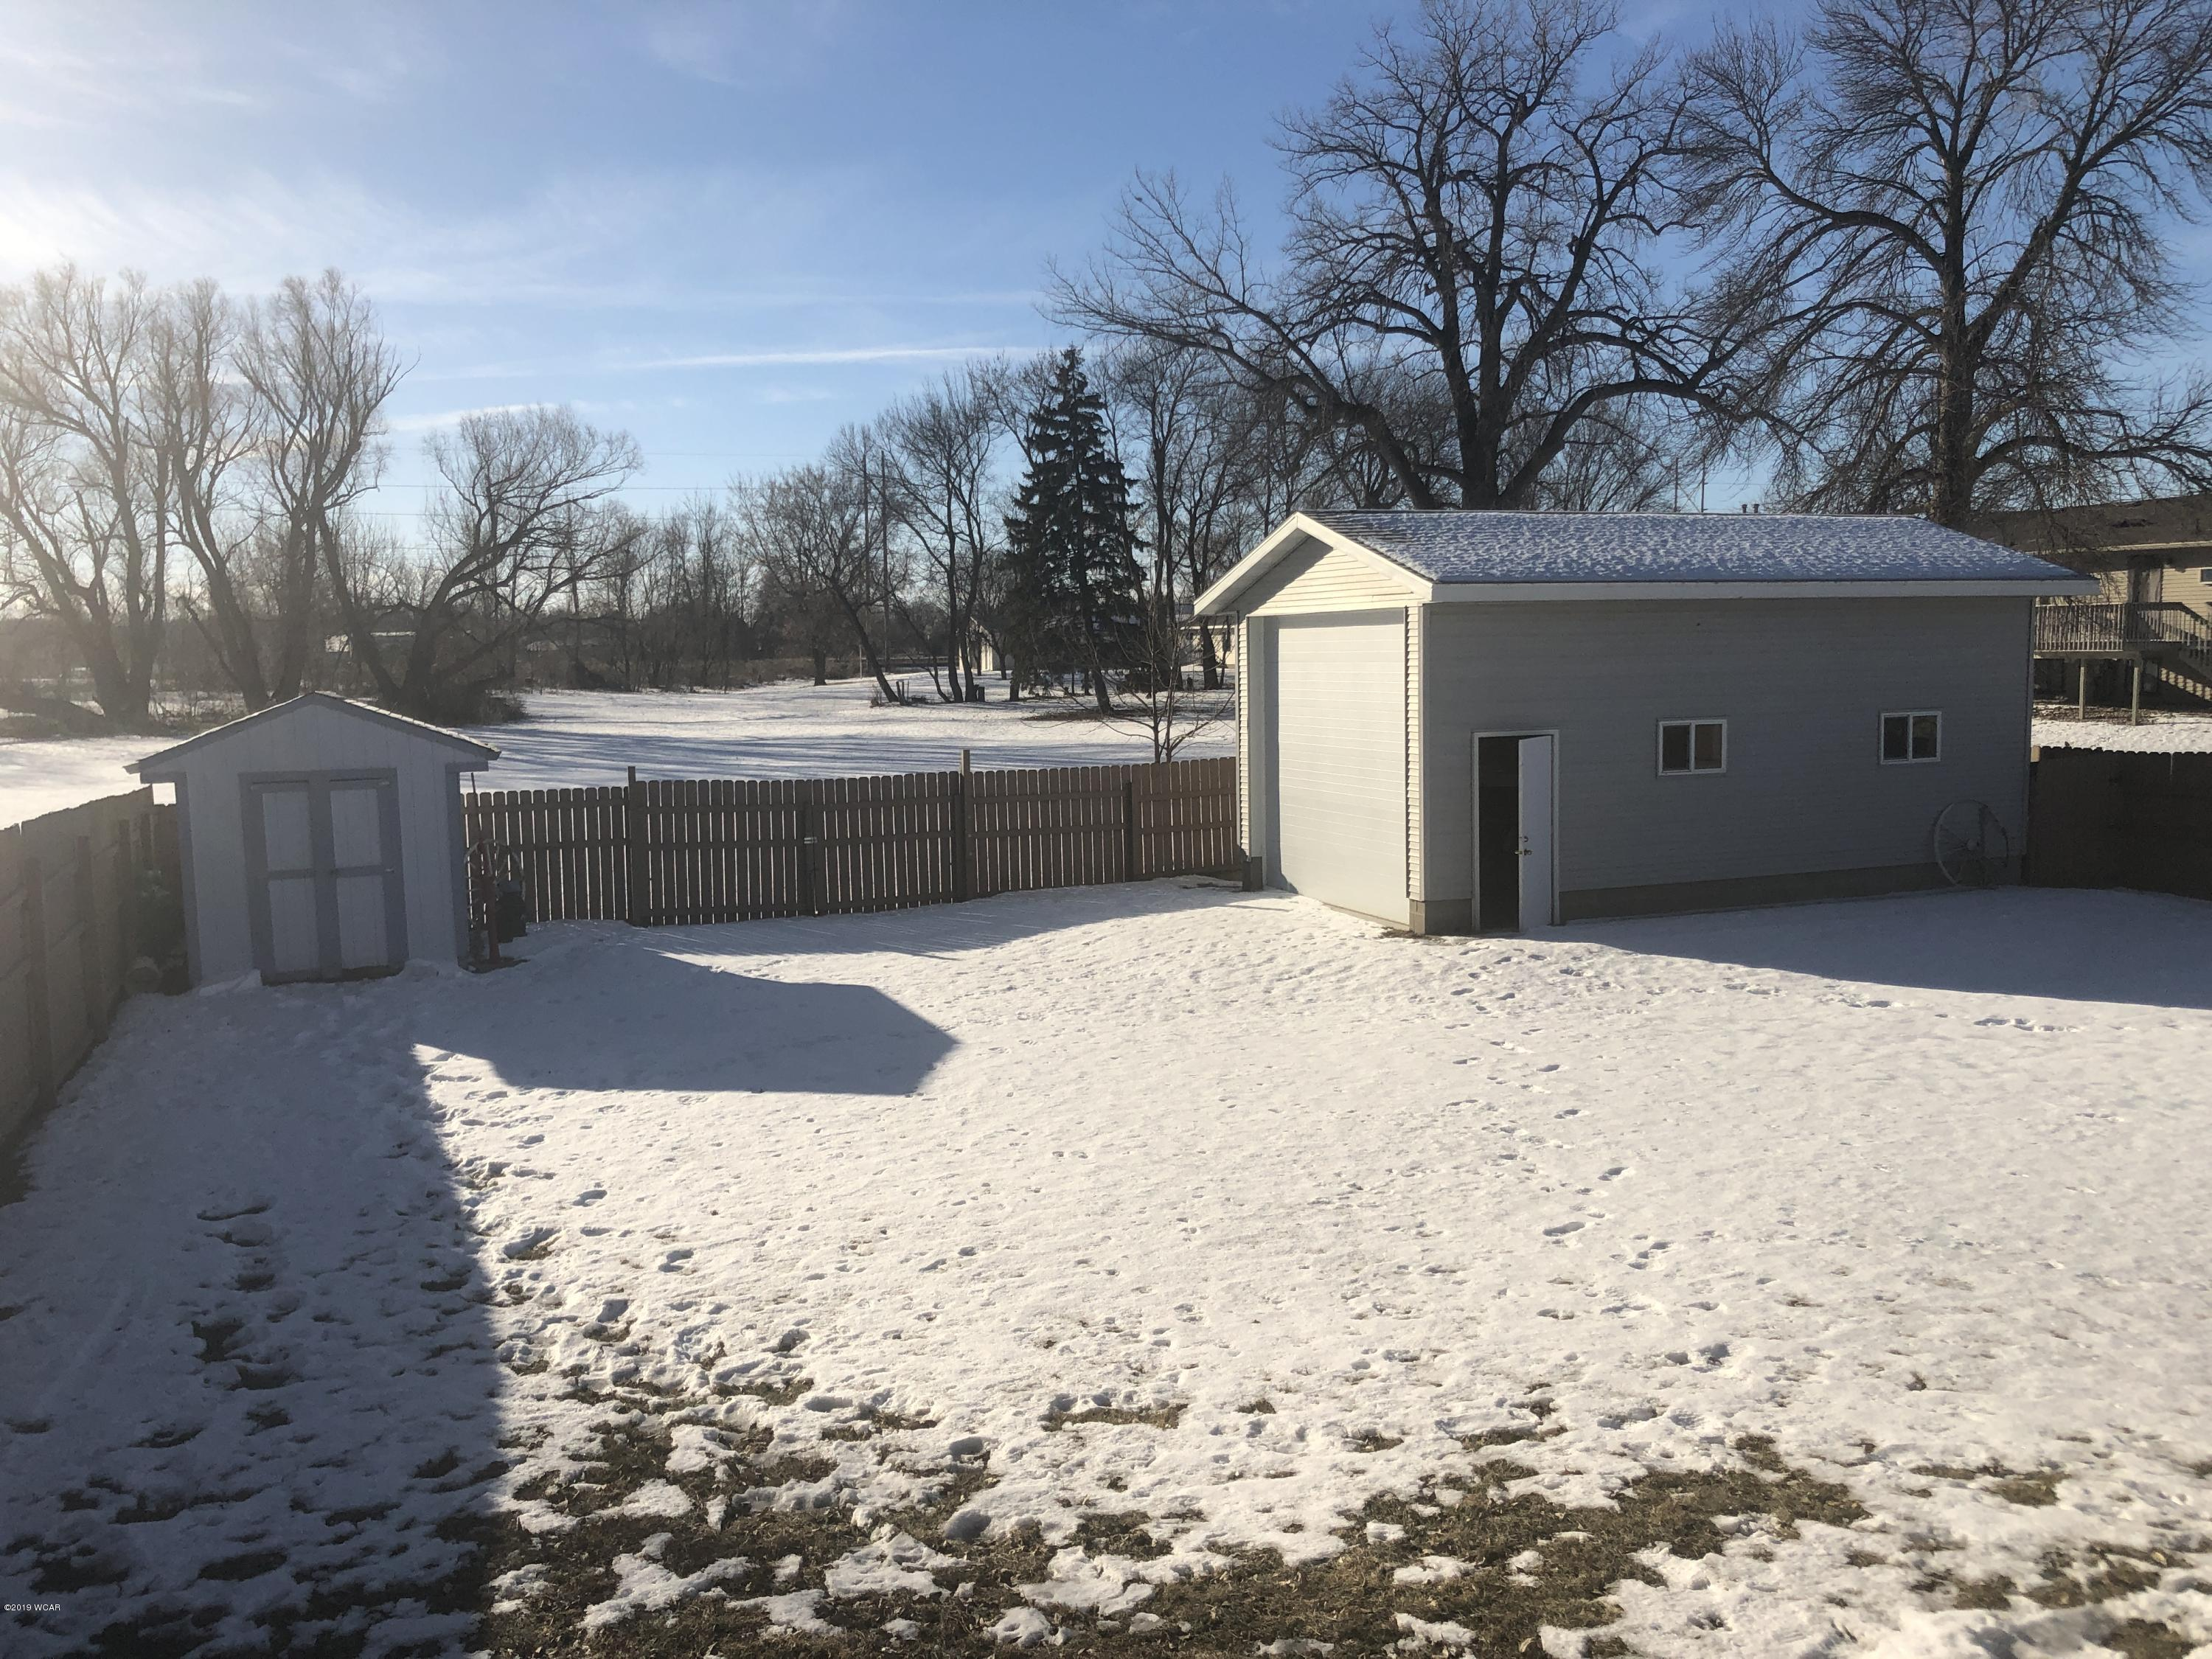 1711 Gorton Avenue,Willmar,4 Bedrooms Bedrooms,2 BathroomsBathrooms,Single Family,Gorton Avenue,6033295